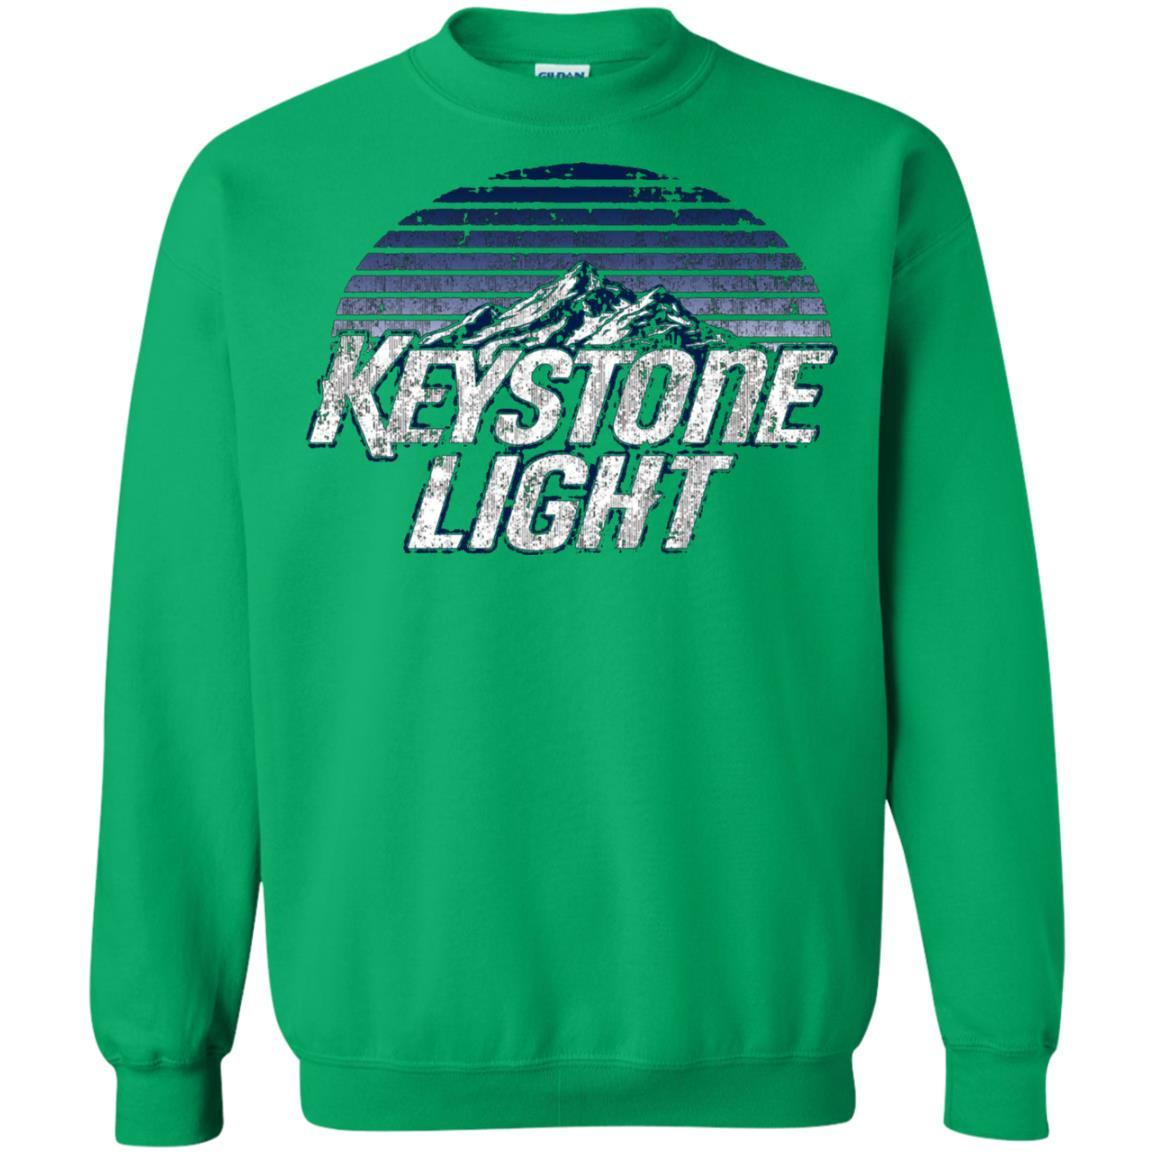 Keystone Light Beer Classic Look - Pullover Sweatshirt Irish Green / 5XL